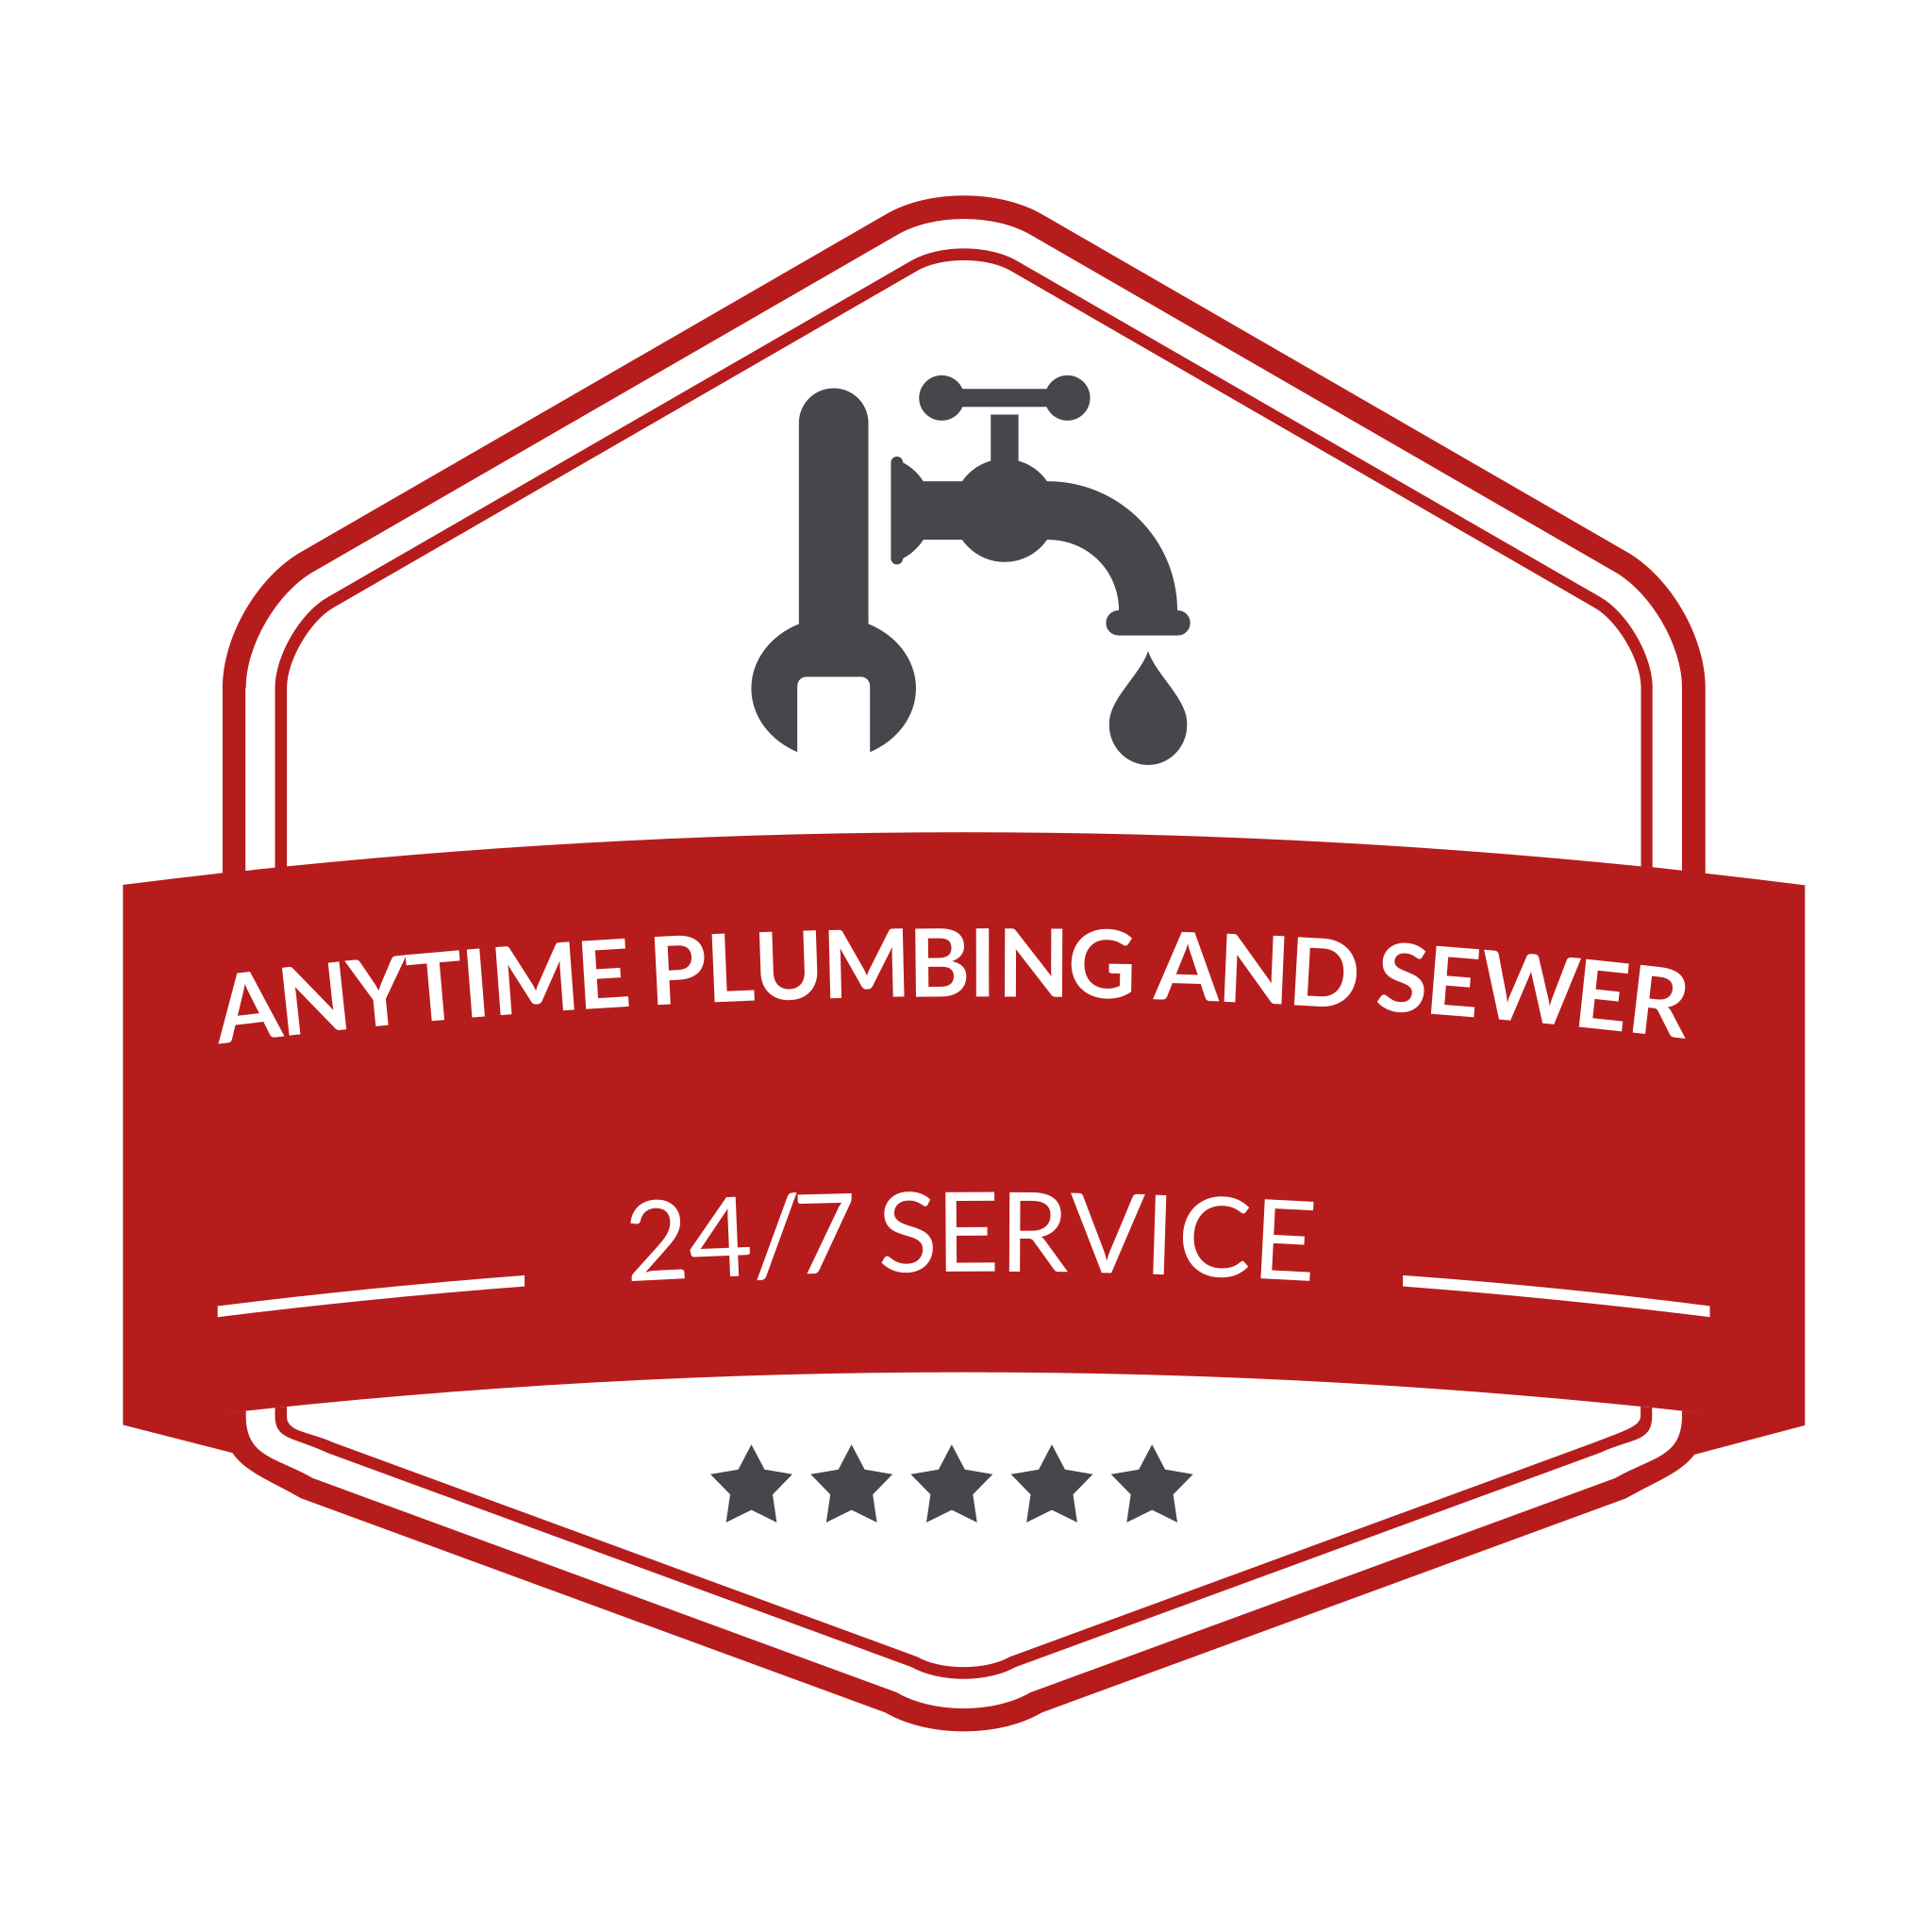 Anytime Plumbing and Sewer